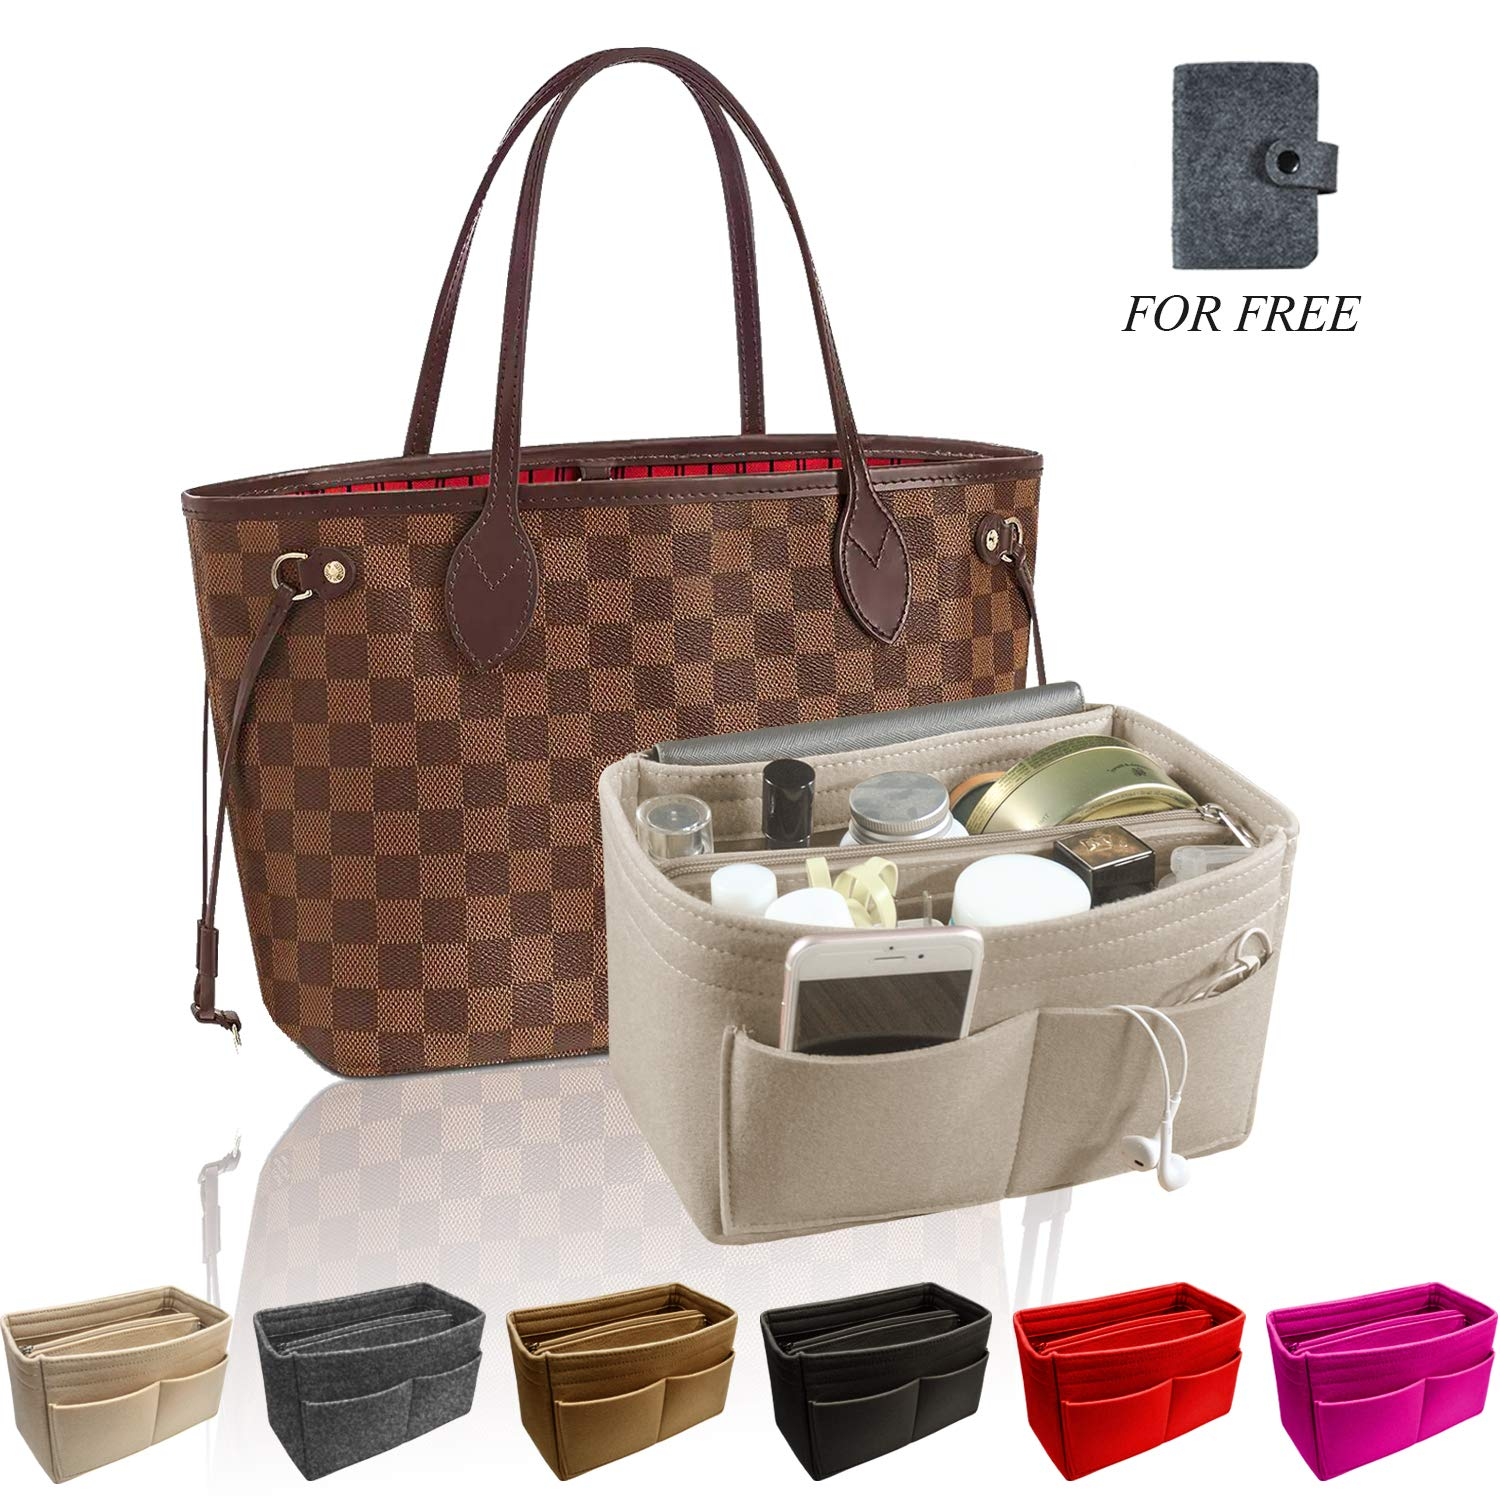 OMYSTYLE FASHION Purse Organizer Insert, Handbag & Tote Organizer, Perfect for Speedy Neverfull and More (Large, Beige) by OMYSTYLE FASHION